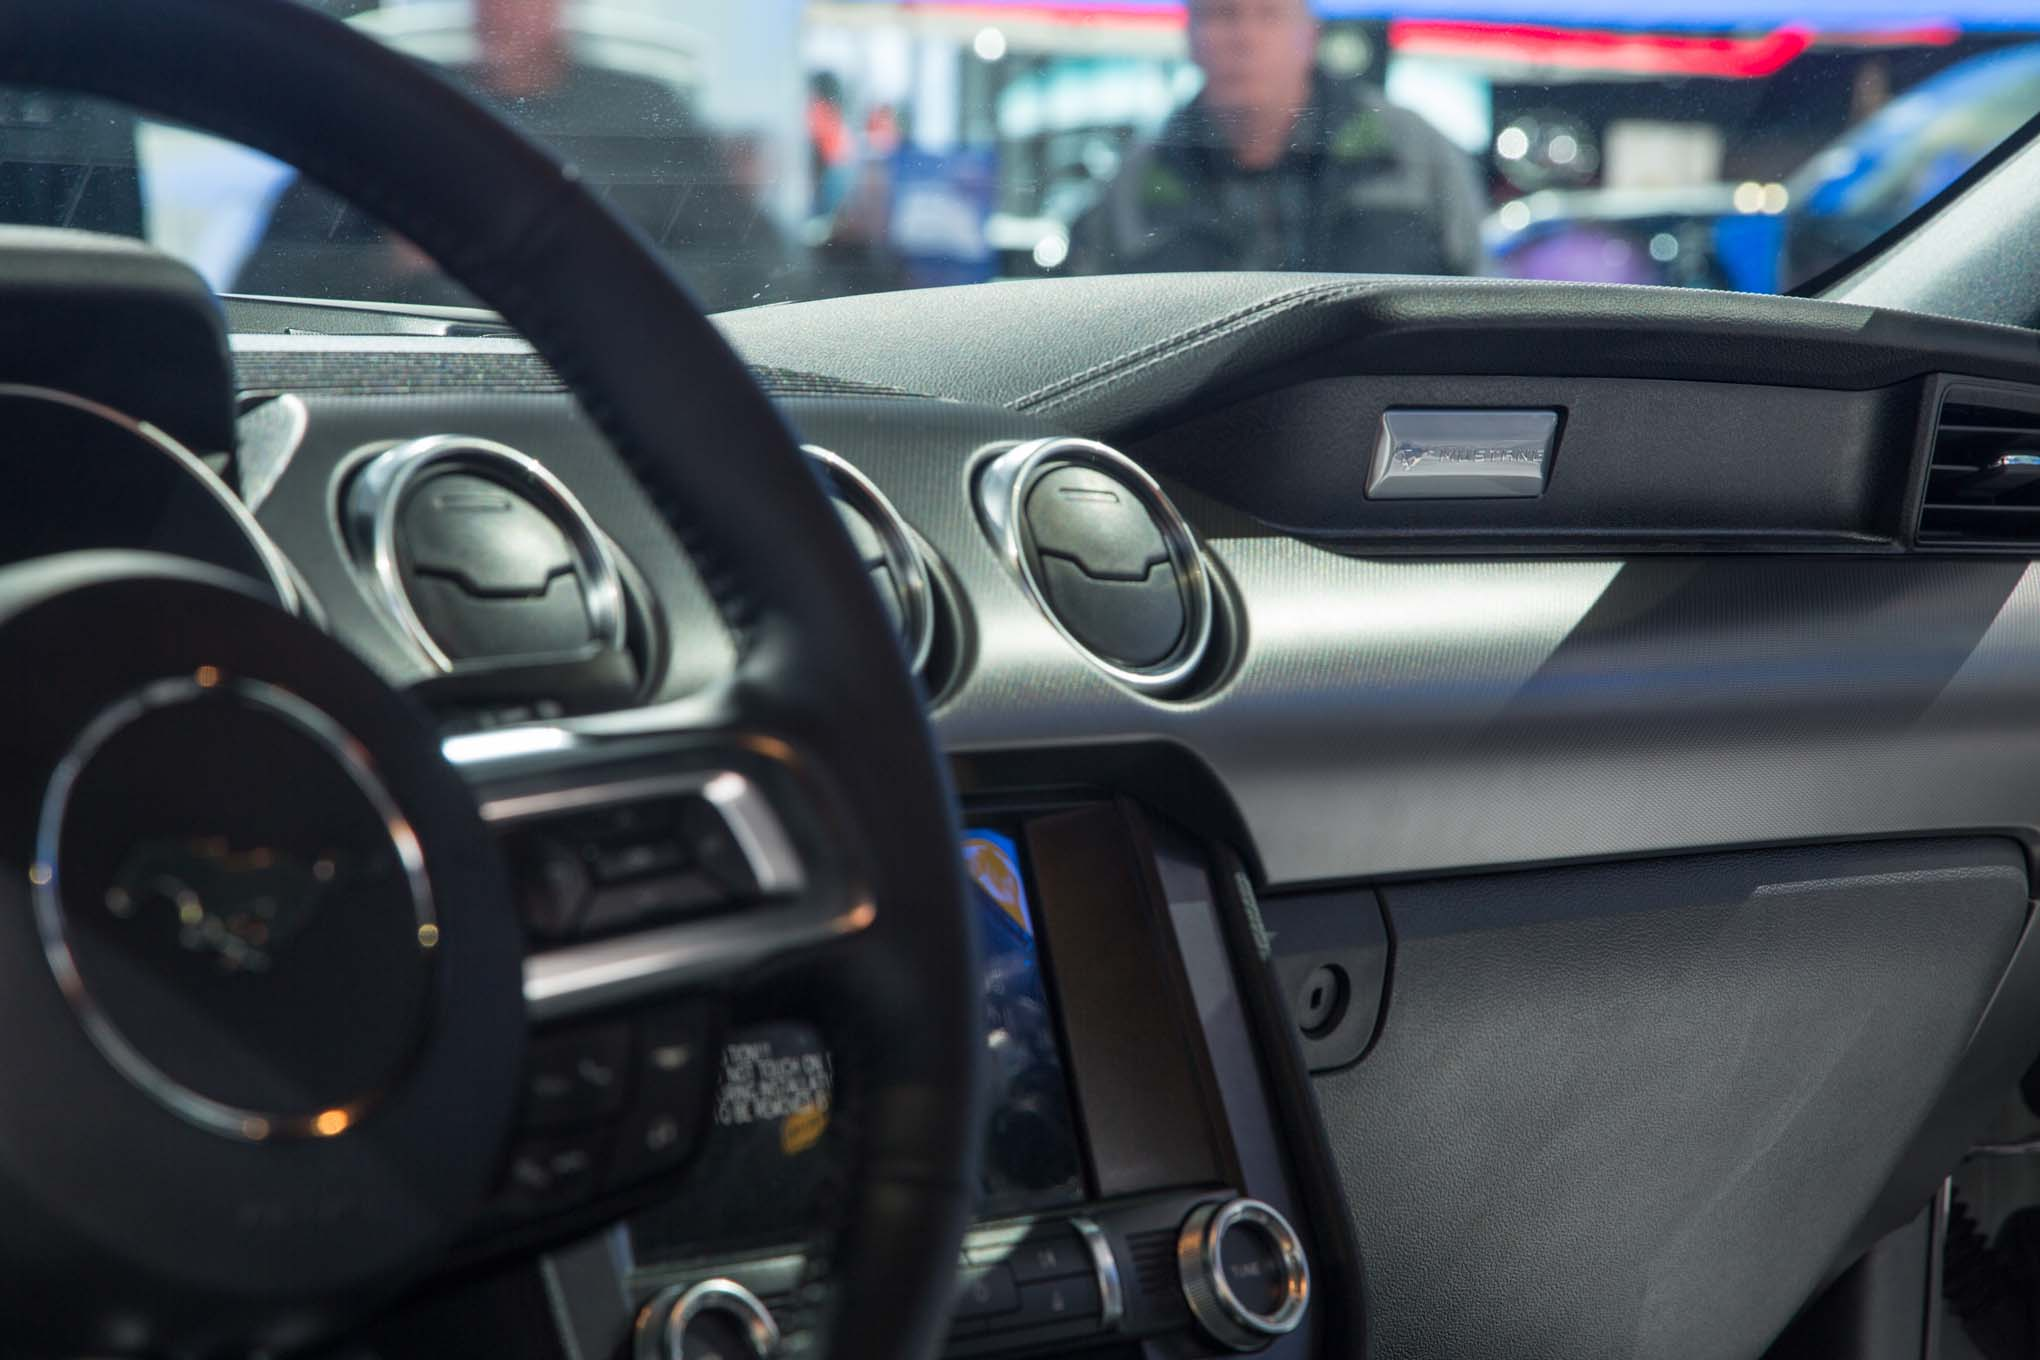 2018 Ford Mustang Gt Interior Dashboard 1